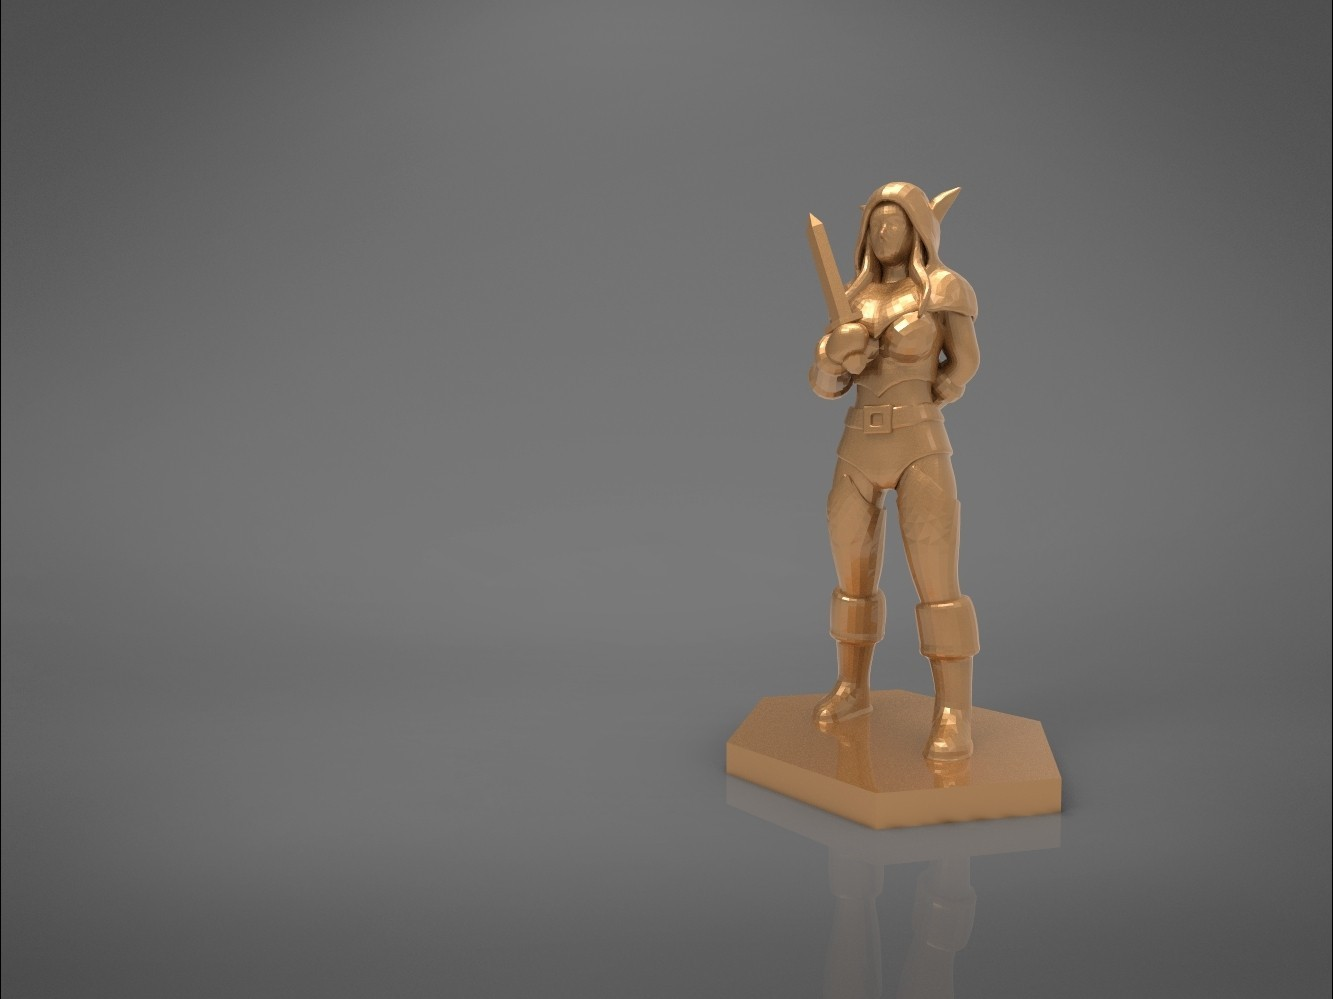 Rogue_2-main_render.443.jpg Download STL file ELF ROGUE FEMALE CHARACTER GAME FIGURES 3D print model • 3D printer object, 3D-mon